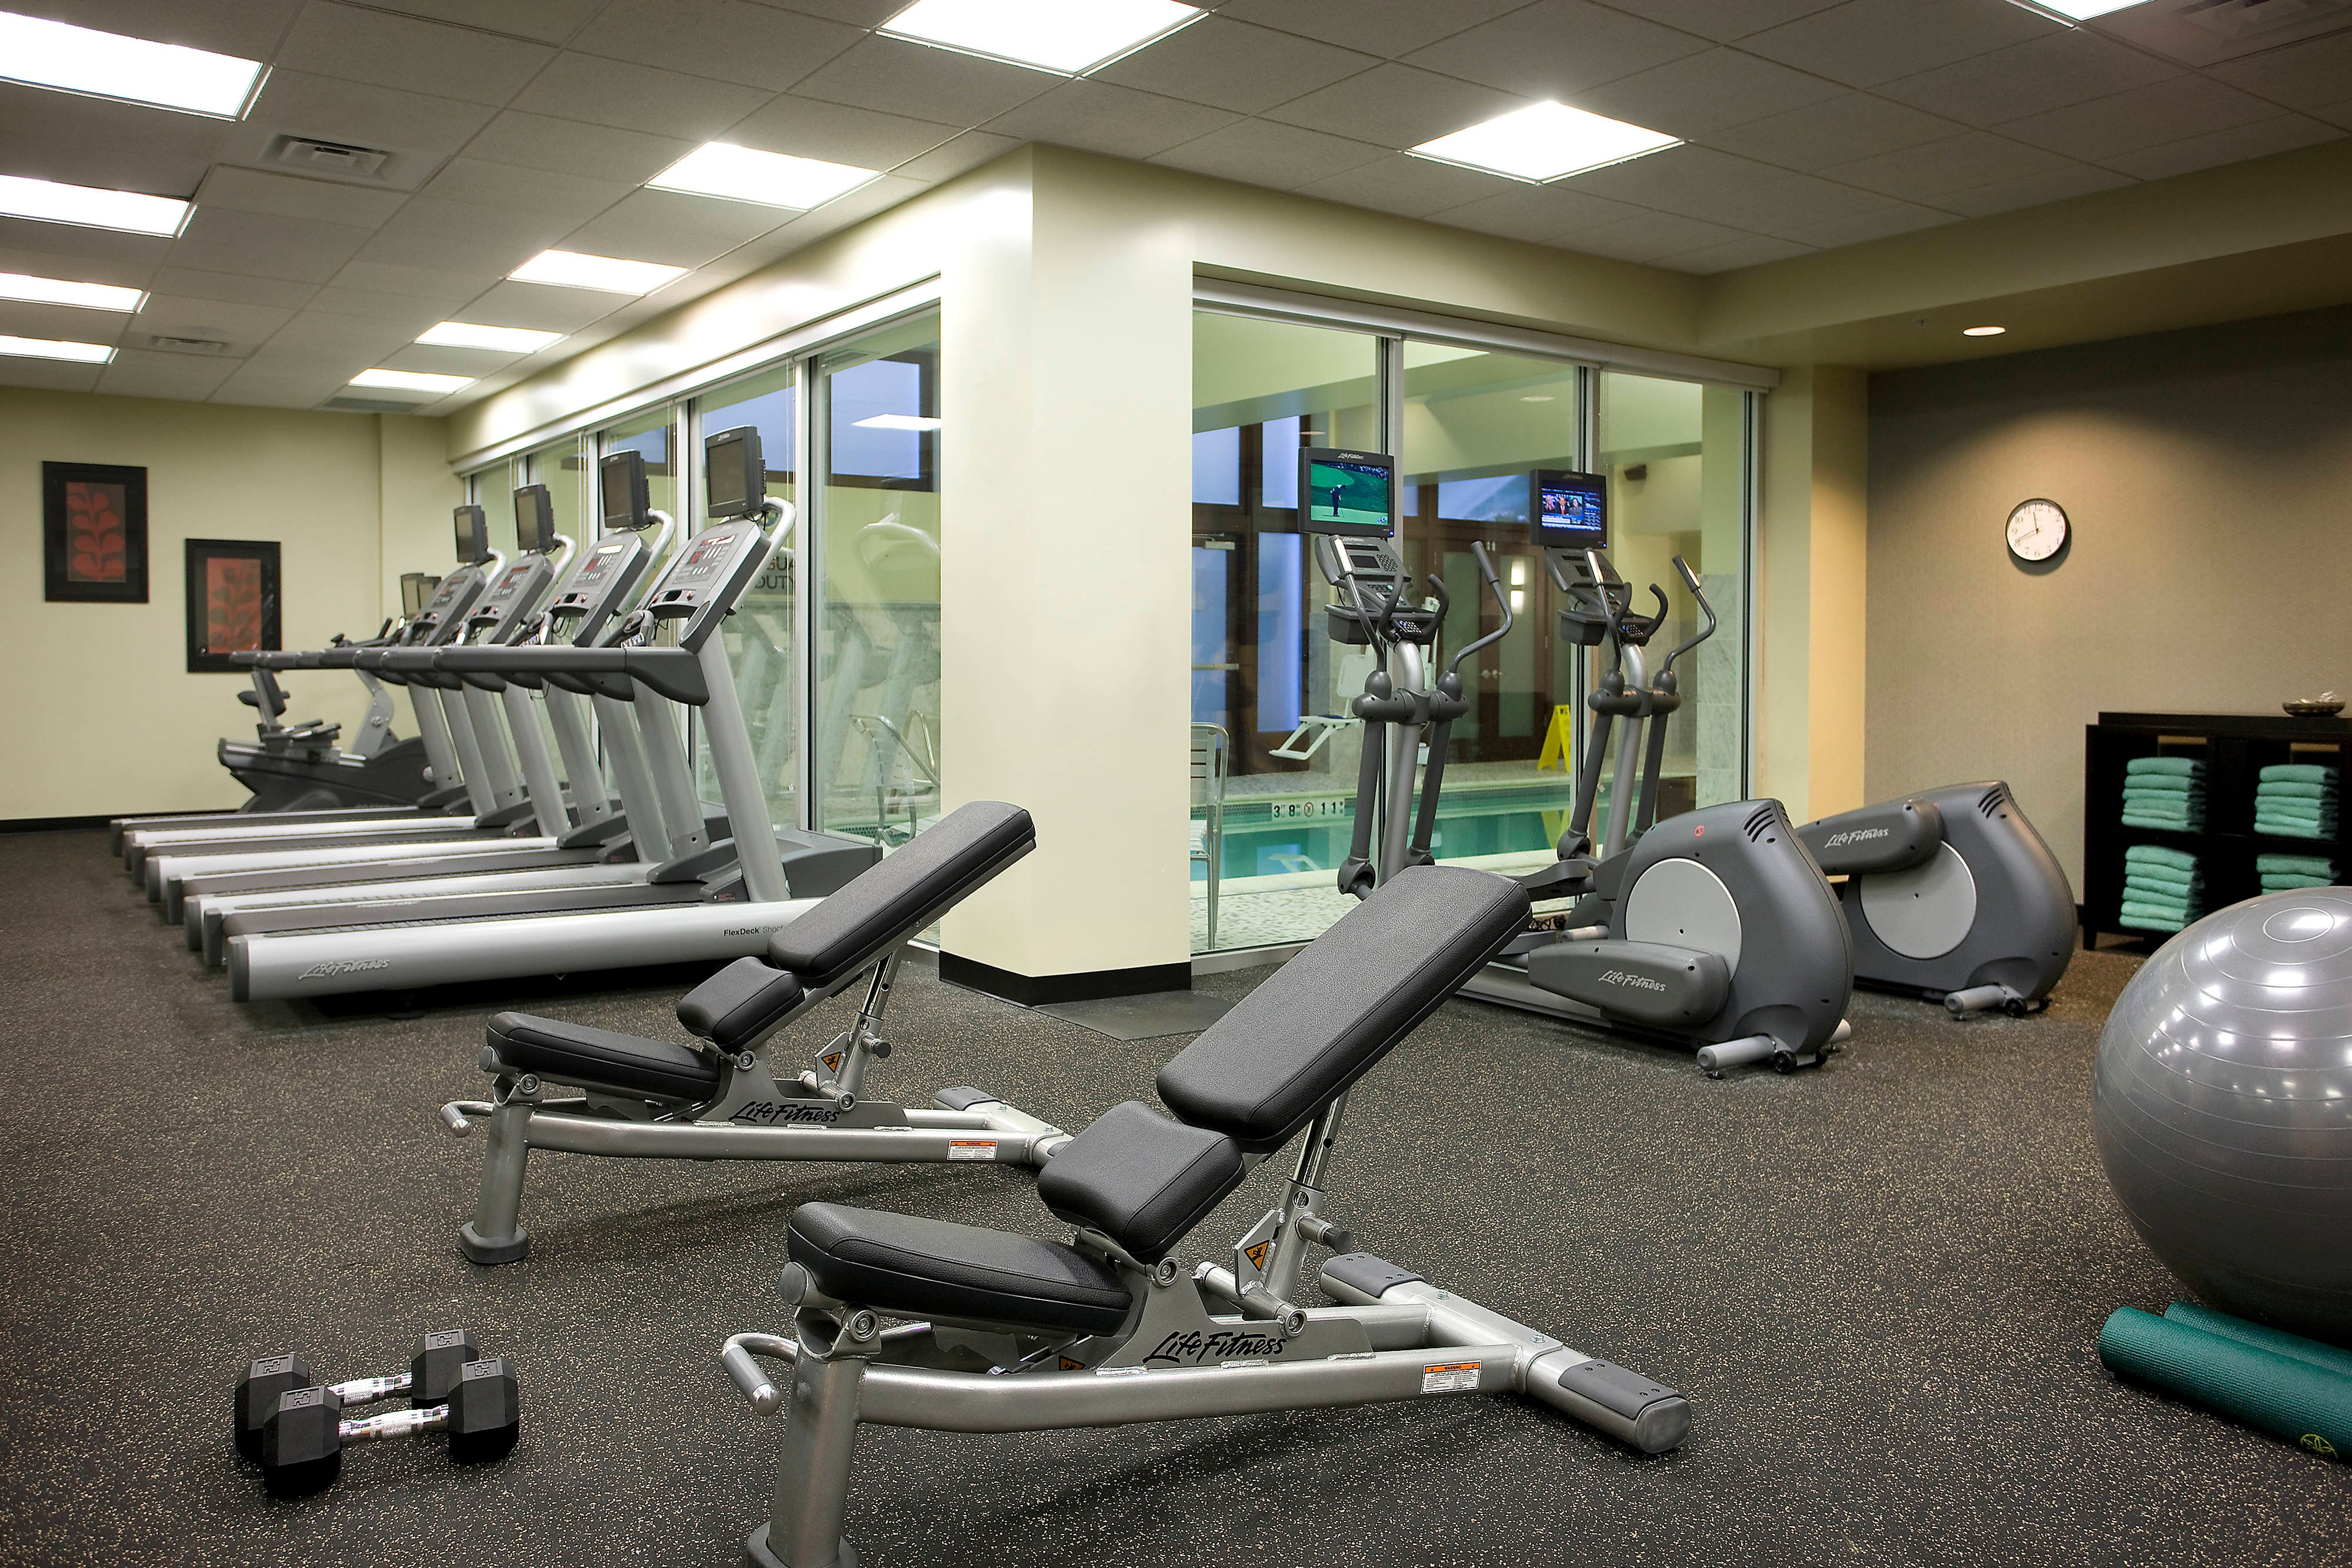 Seattle hotel fitness center